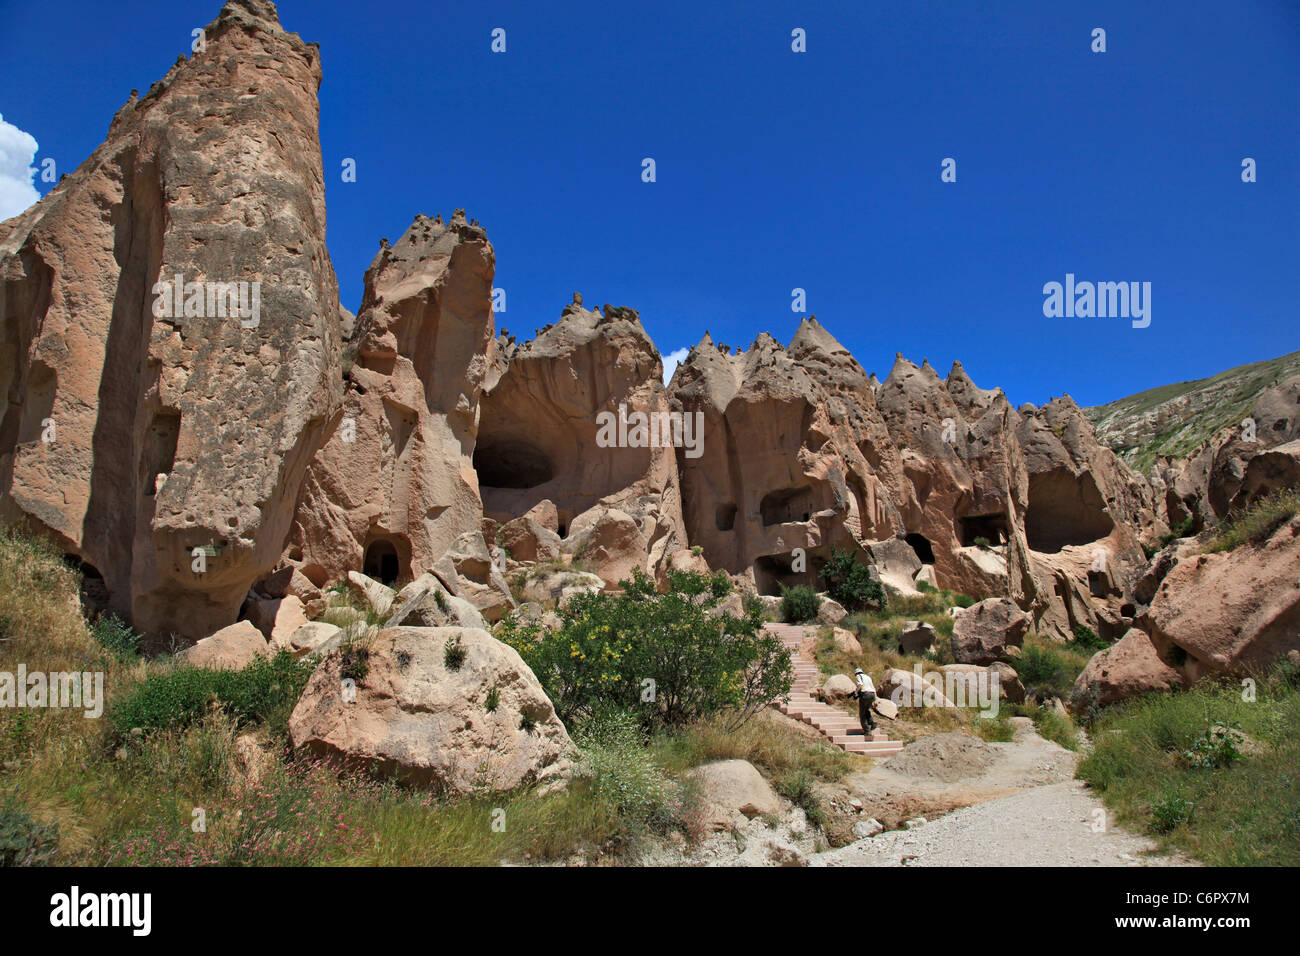 Zelve Open-Air Museum, with accommodation places, churches, mill and devecotes. Zelve, Goreme, Turkey - Stock Image